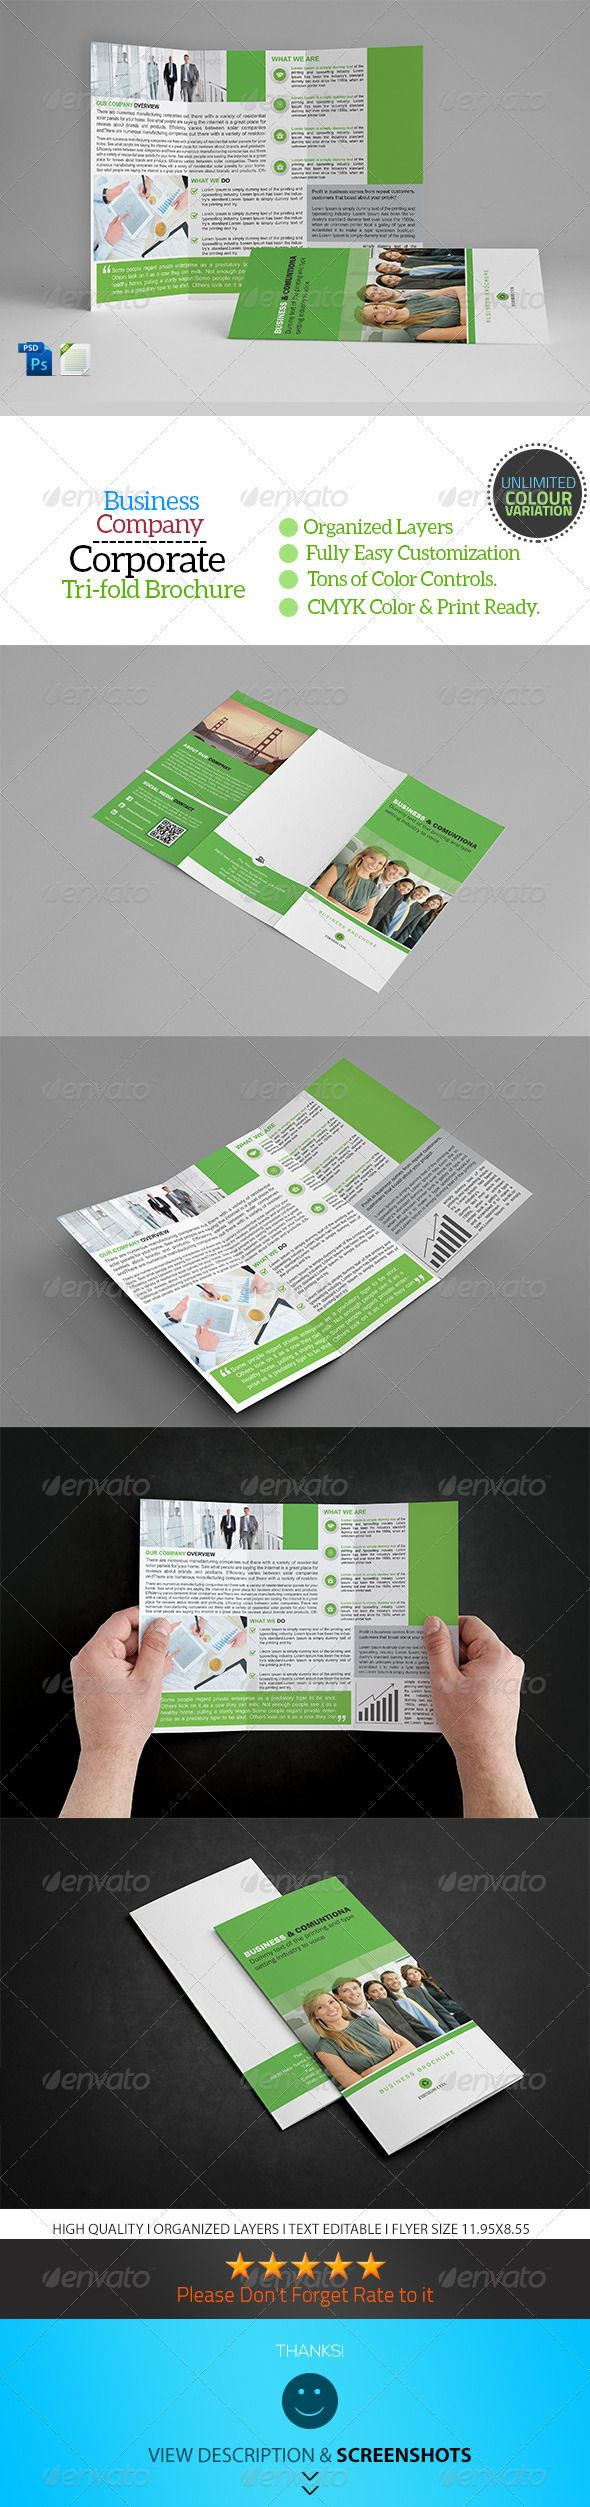 A4 Trifold Business Brochure Template Vol13 The